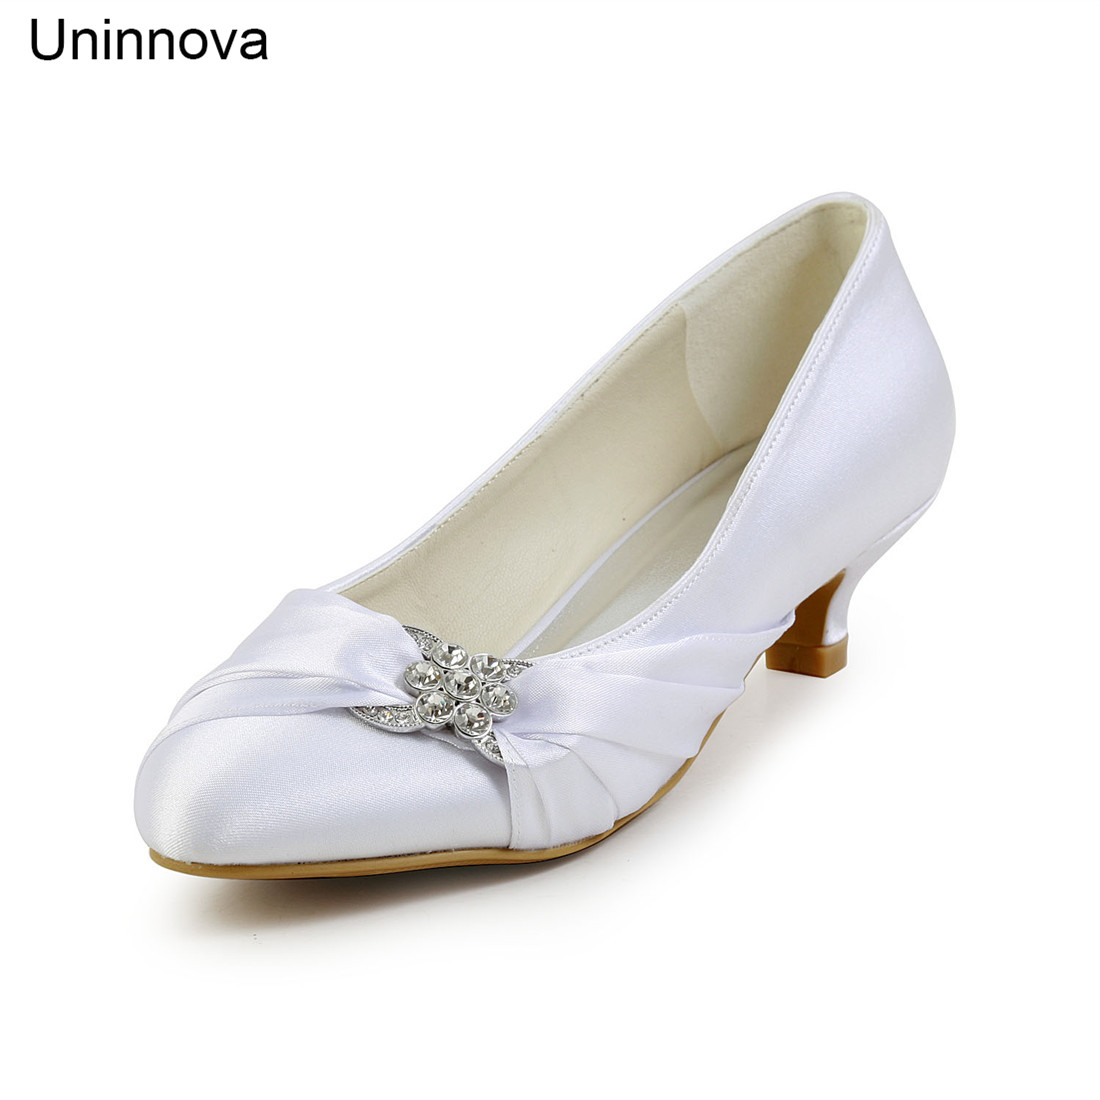 Bridal Bridesmaid Crystal Knot Med Heel Wedding Pumps Round Toe Ivory White Champagne Royal Blue Big